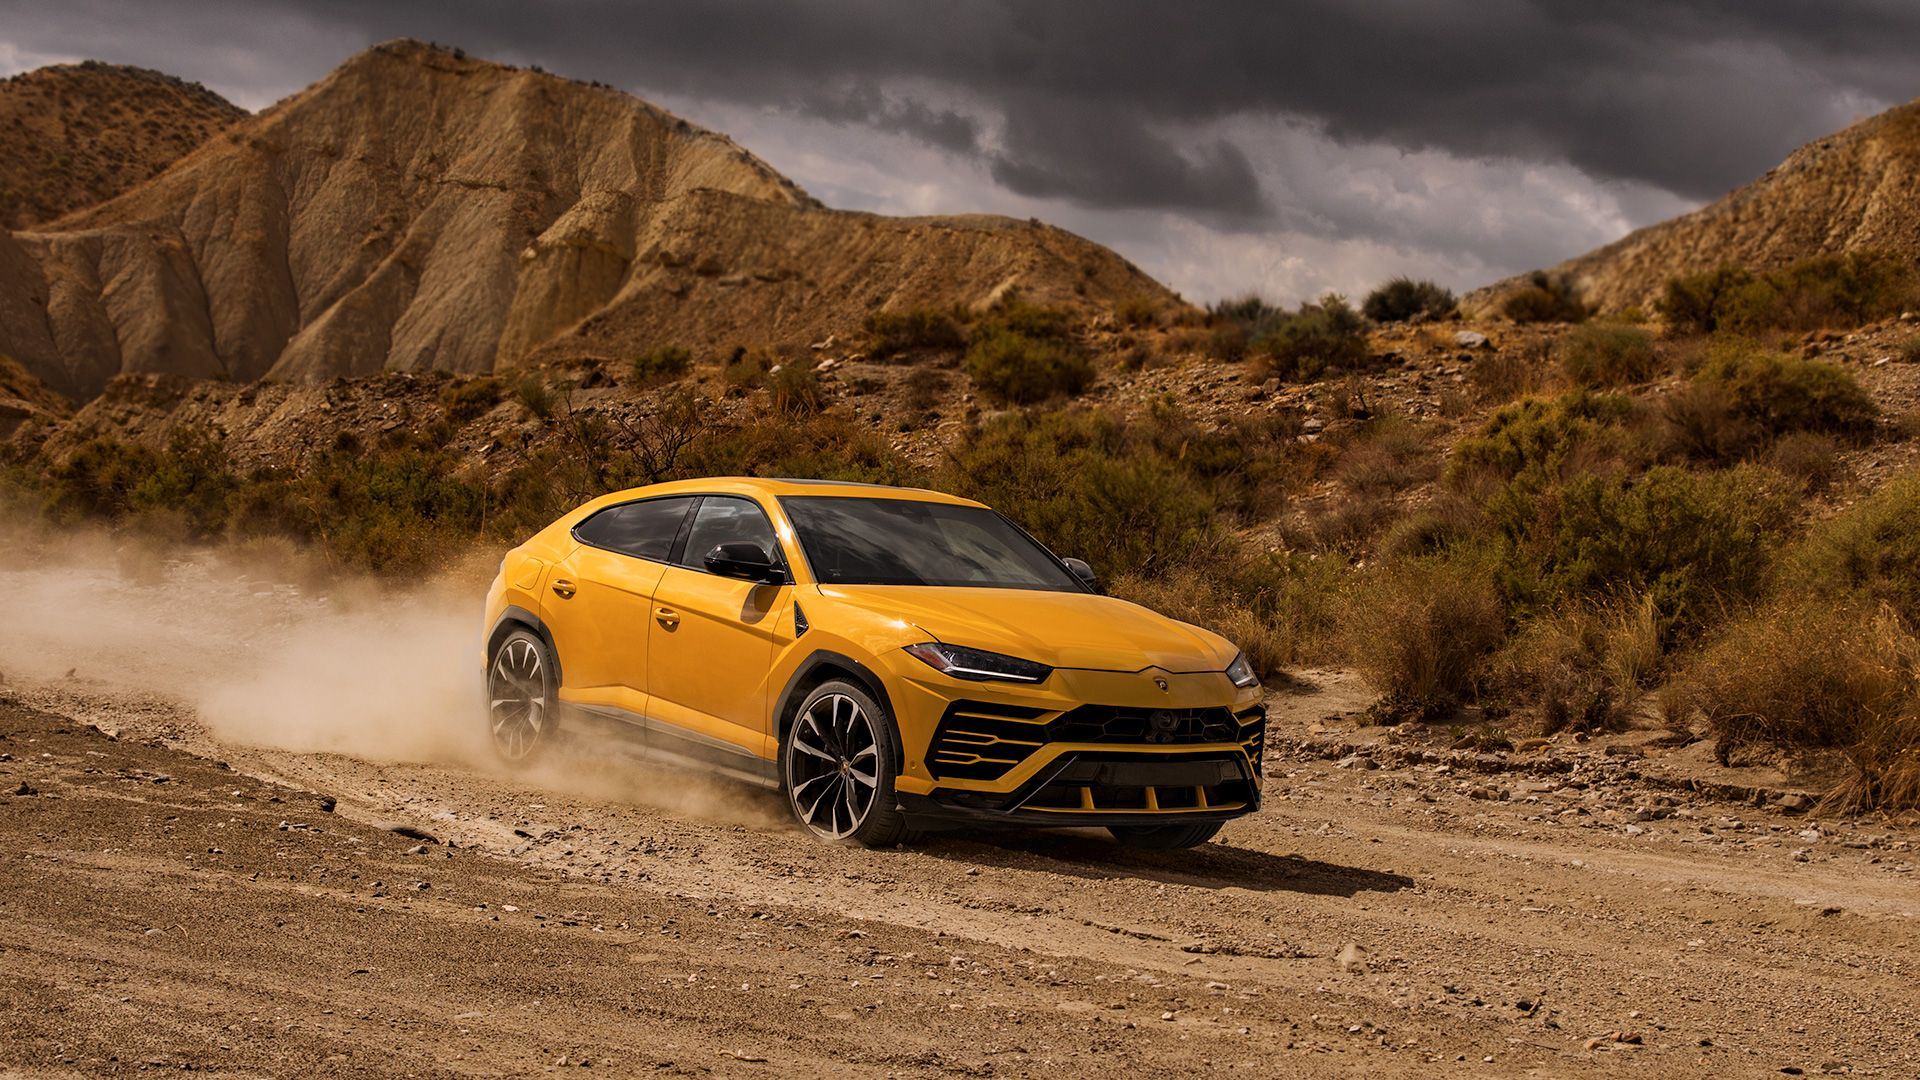 Urus Lamborghini: Technical Specifications, Performance (top Speed And  Acceleration), Design And